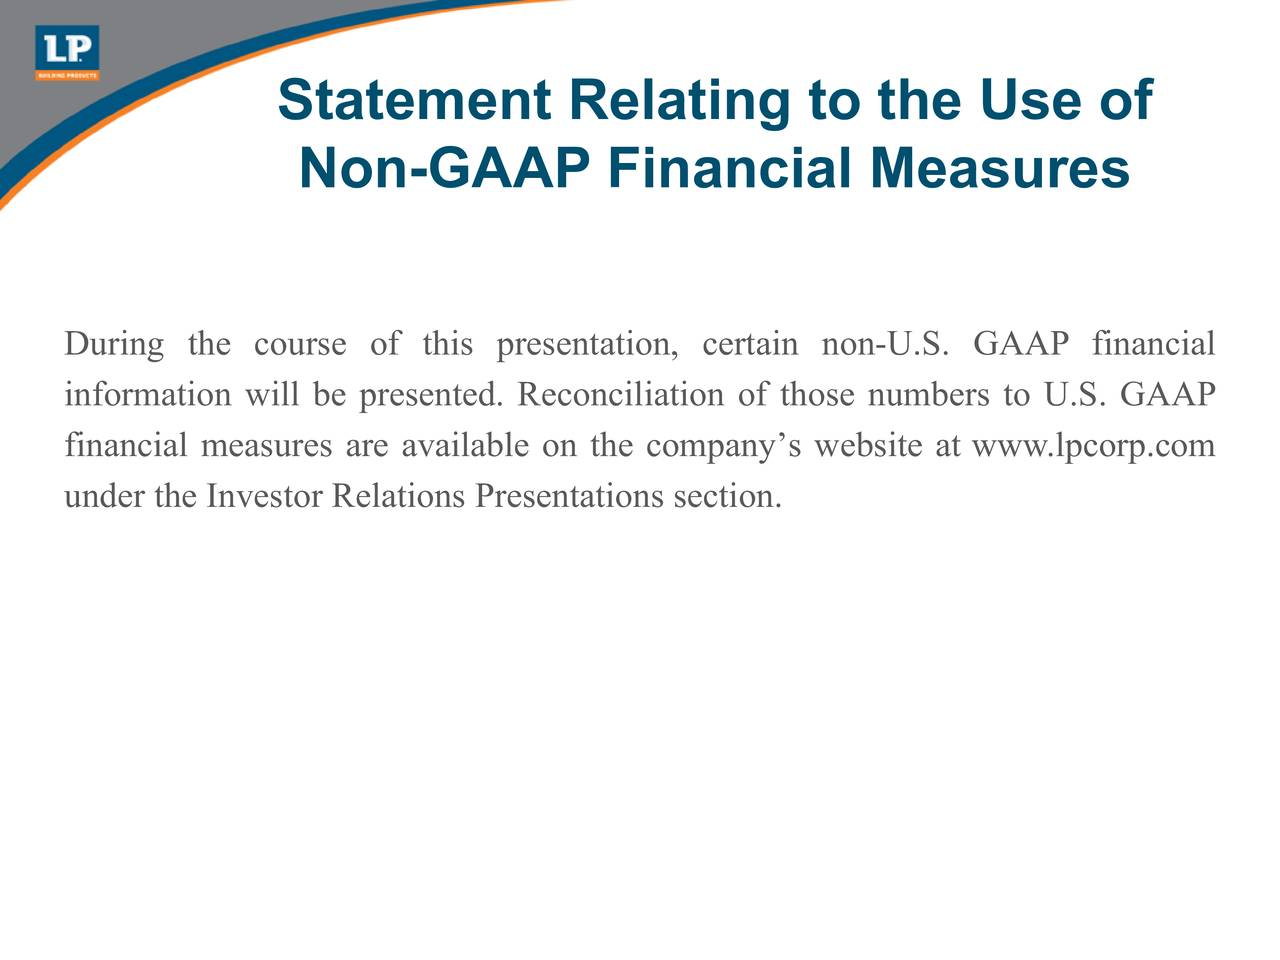 Non-GAAP Financial Measures During the course of this presentation, certain non-U.S. GAAP financial information will be presented. Reconciliation of those numbers to U.S. GAAP financial measures are available on the companys website at www.lpcorp.com under the Investor Relations Presentations section.